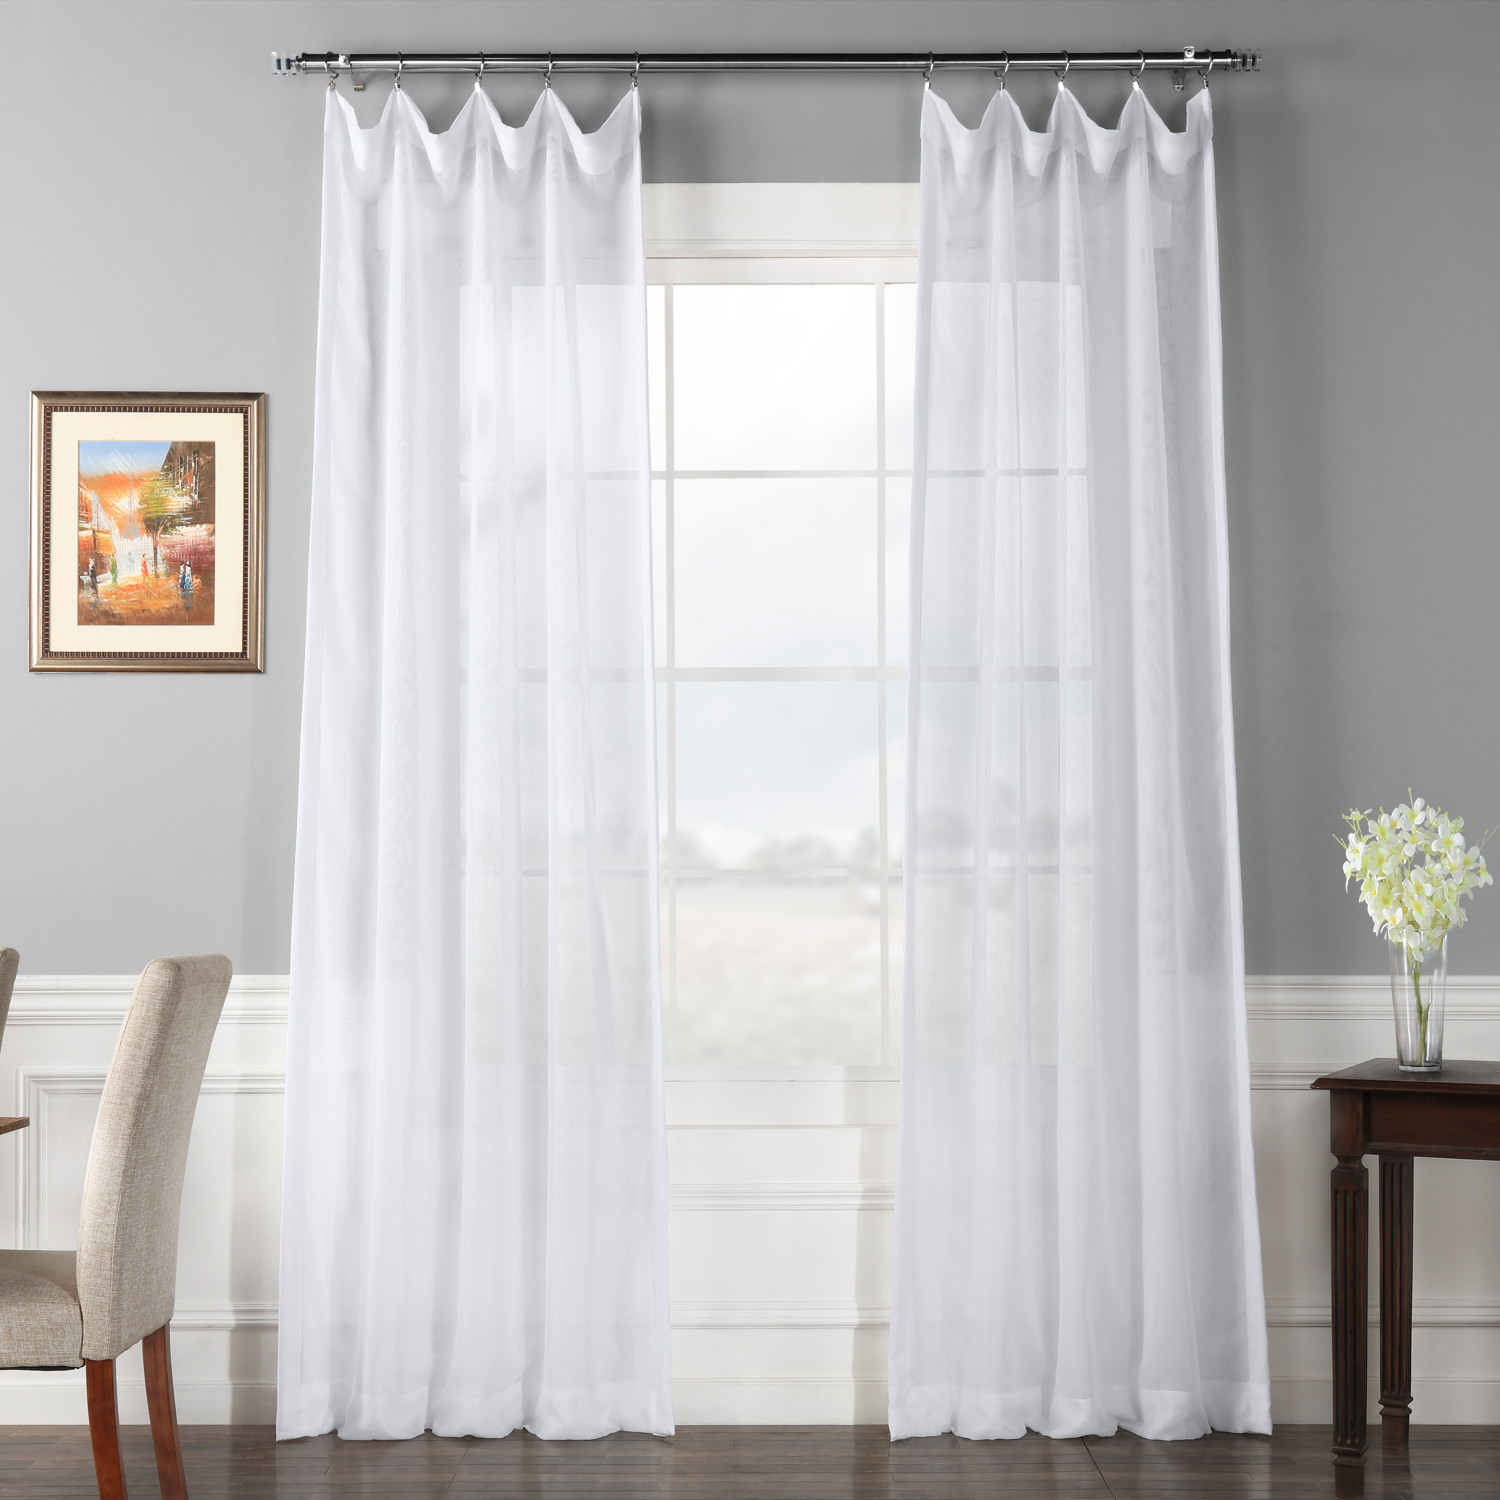 Signature Double Layered White Sheer Curtain